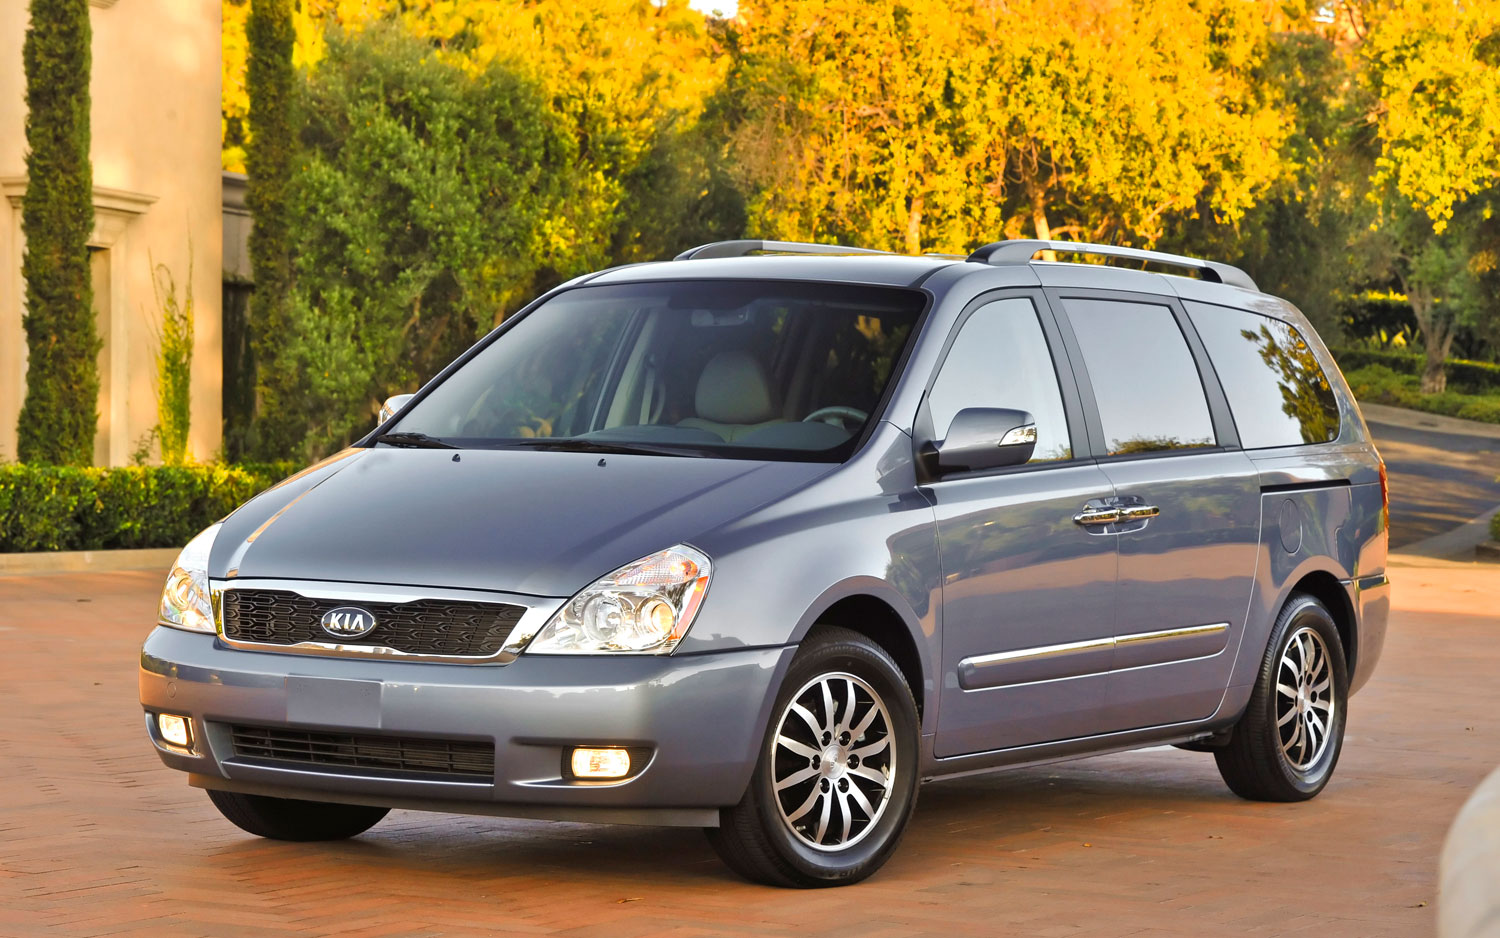 Kia Sedona Axed For 2013 Possible Replacement In 2014